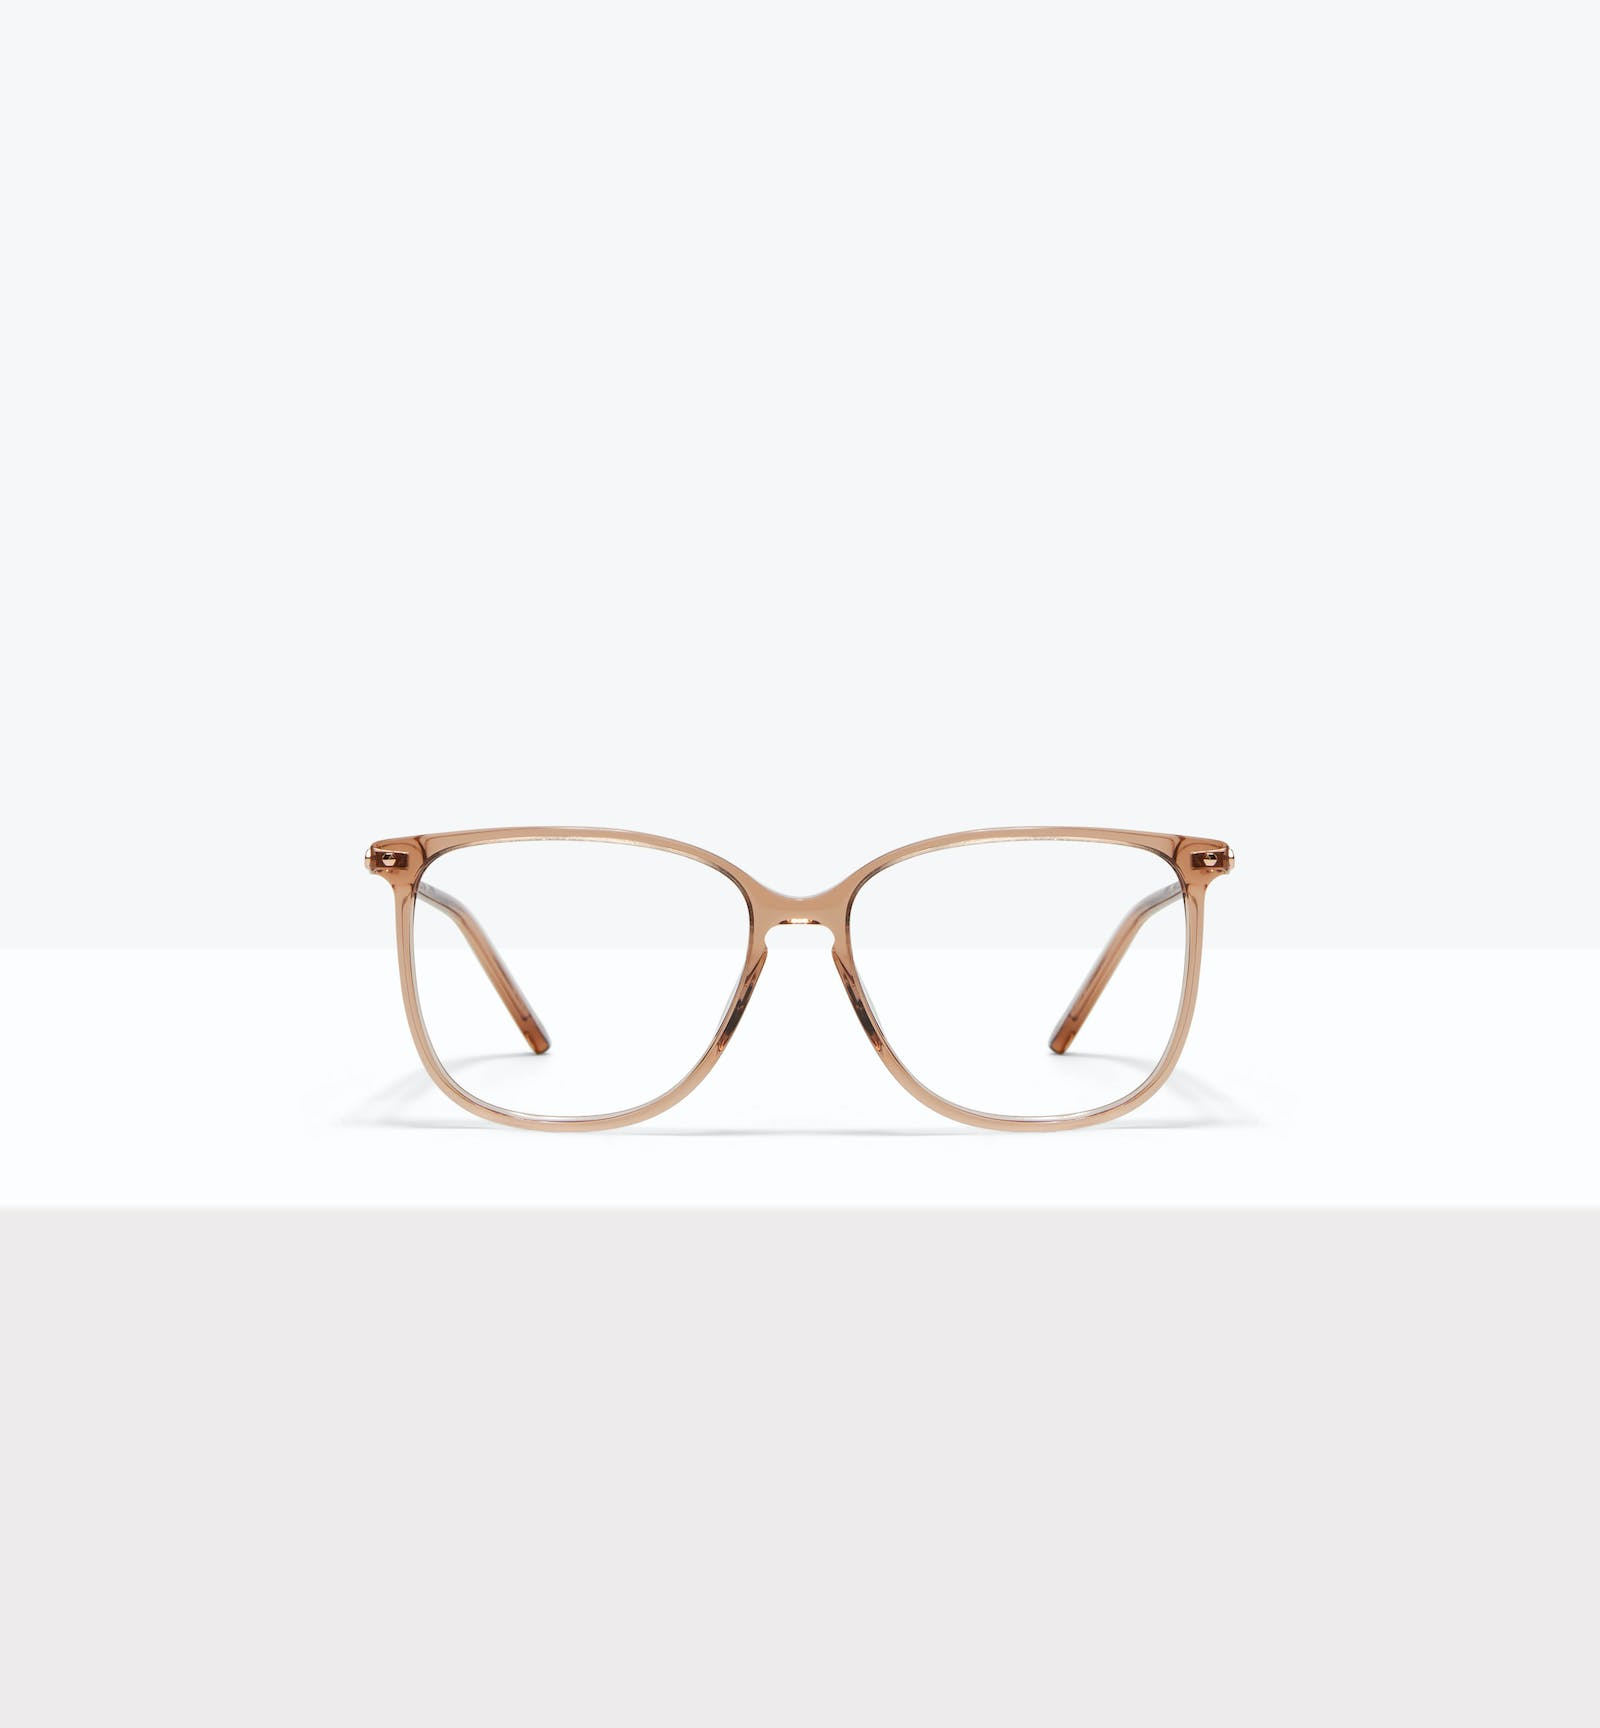 95fe399f160 Affordable Fashion Glasses Square Eyeglasses Women Sonia Terra